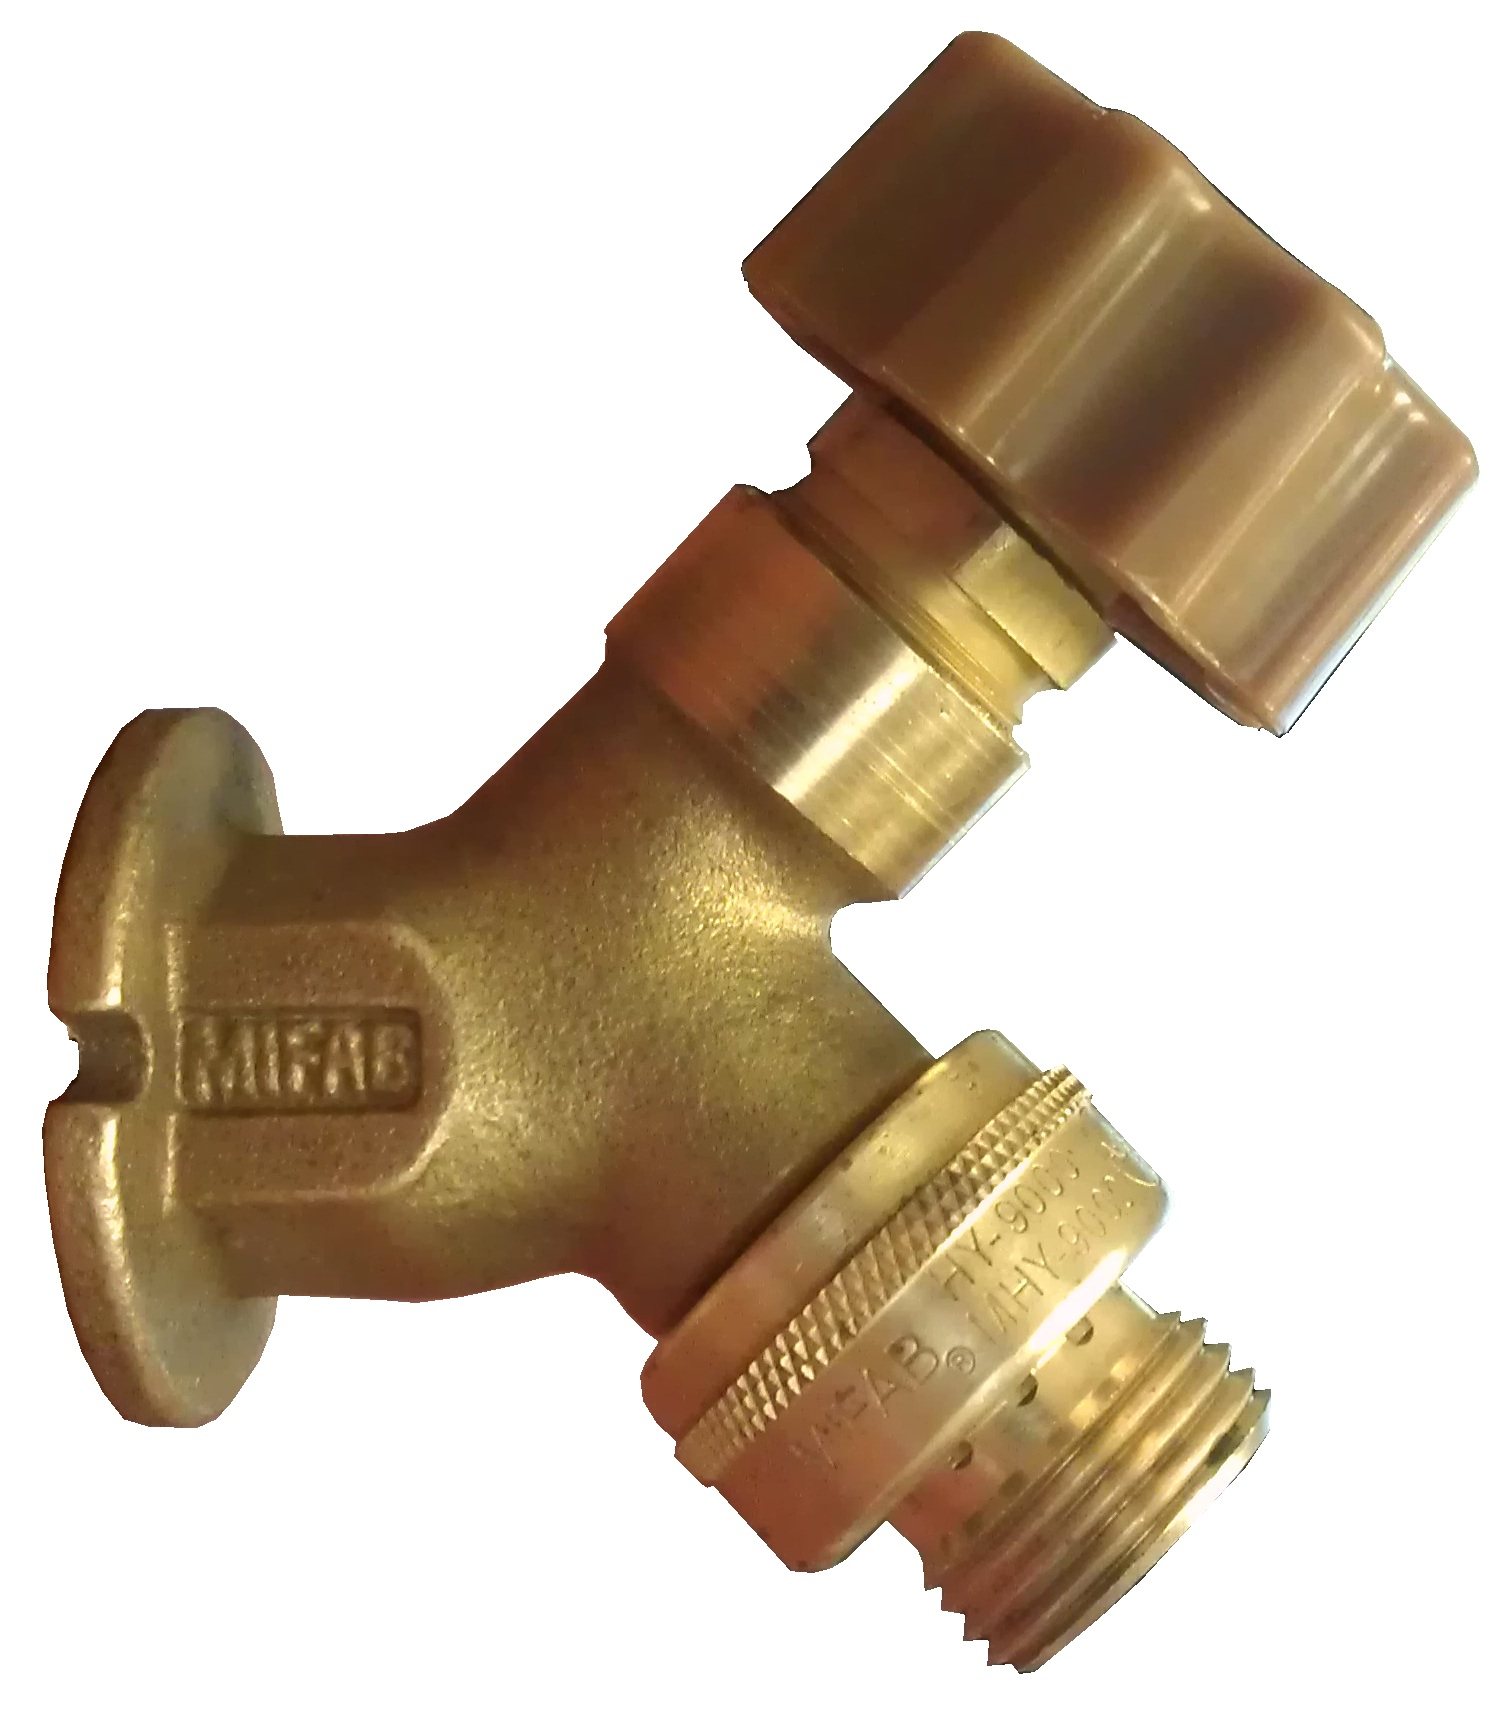 Mhy 90 Series Rough Brass Wall Faucet